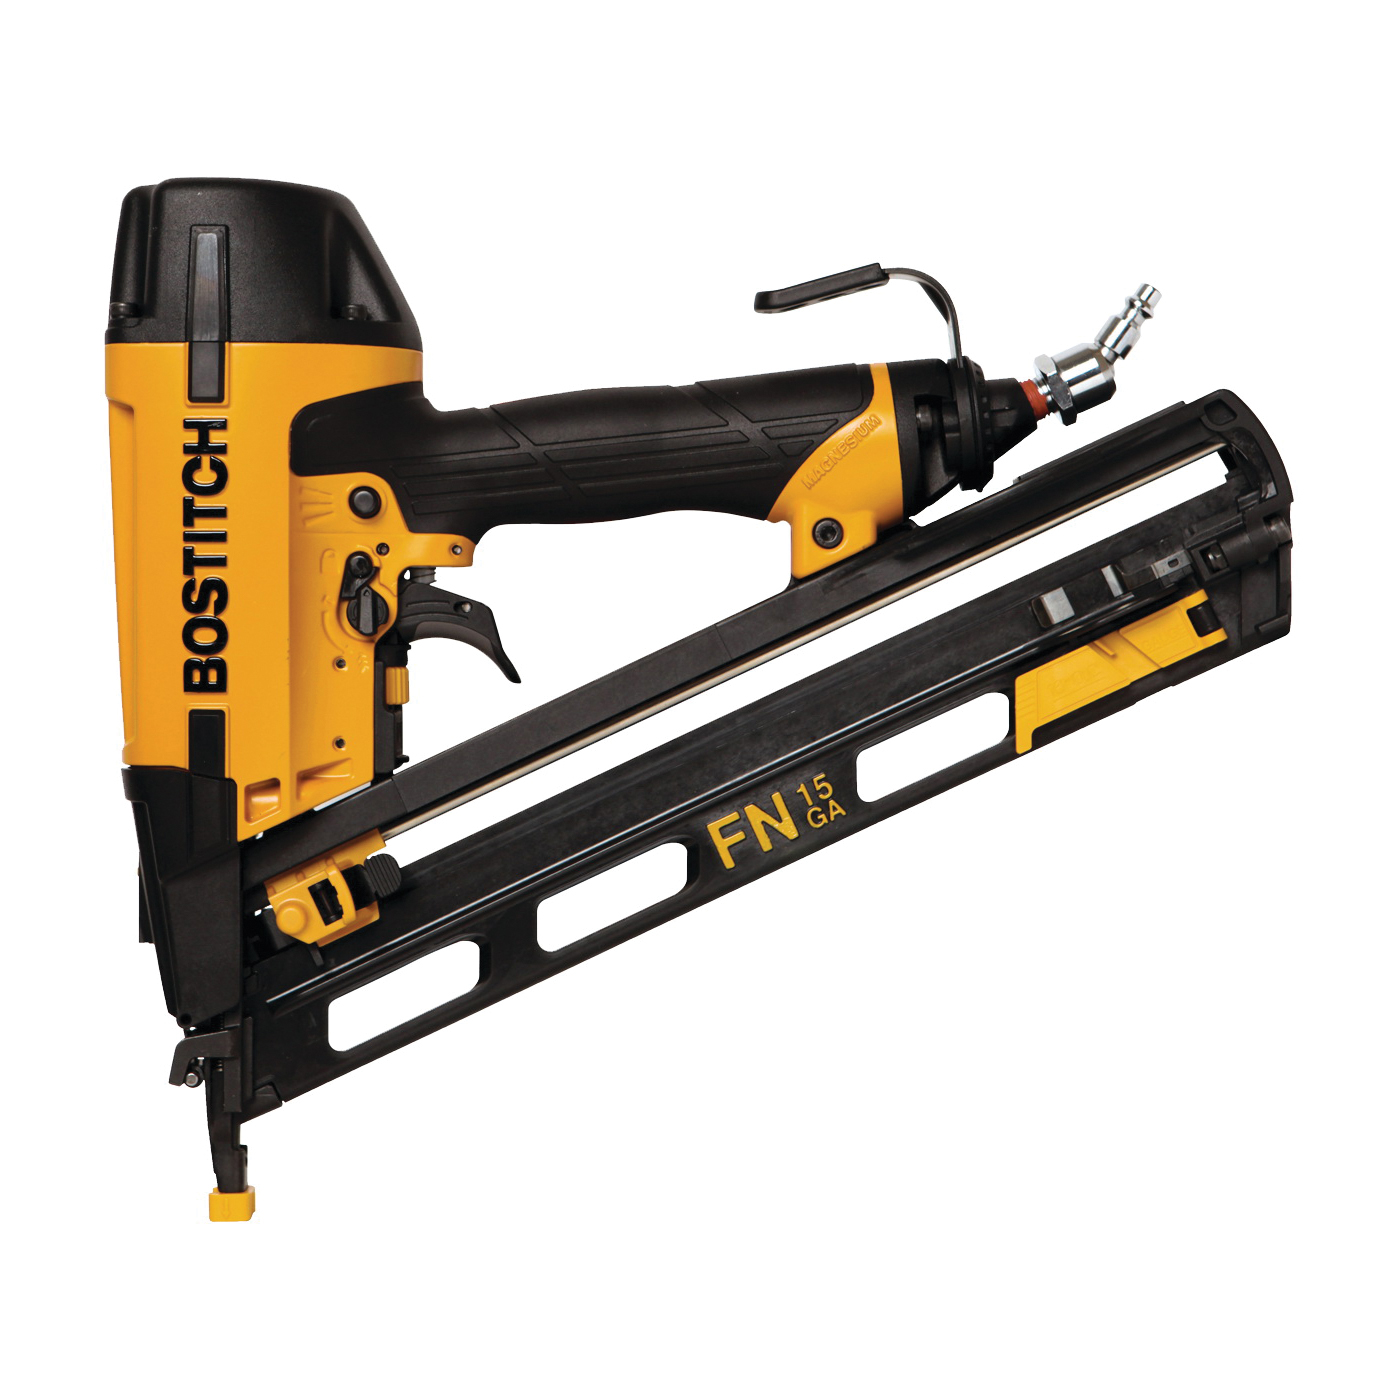 Picture of Bostitch N62FNK-2 Finish Nailer Kit, 130 Magazine, 34 deg Collation, Glue Collation, 1-1/4 to 2-1/2 in Fastener